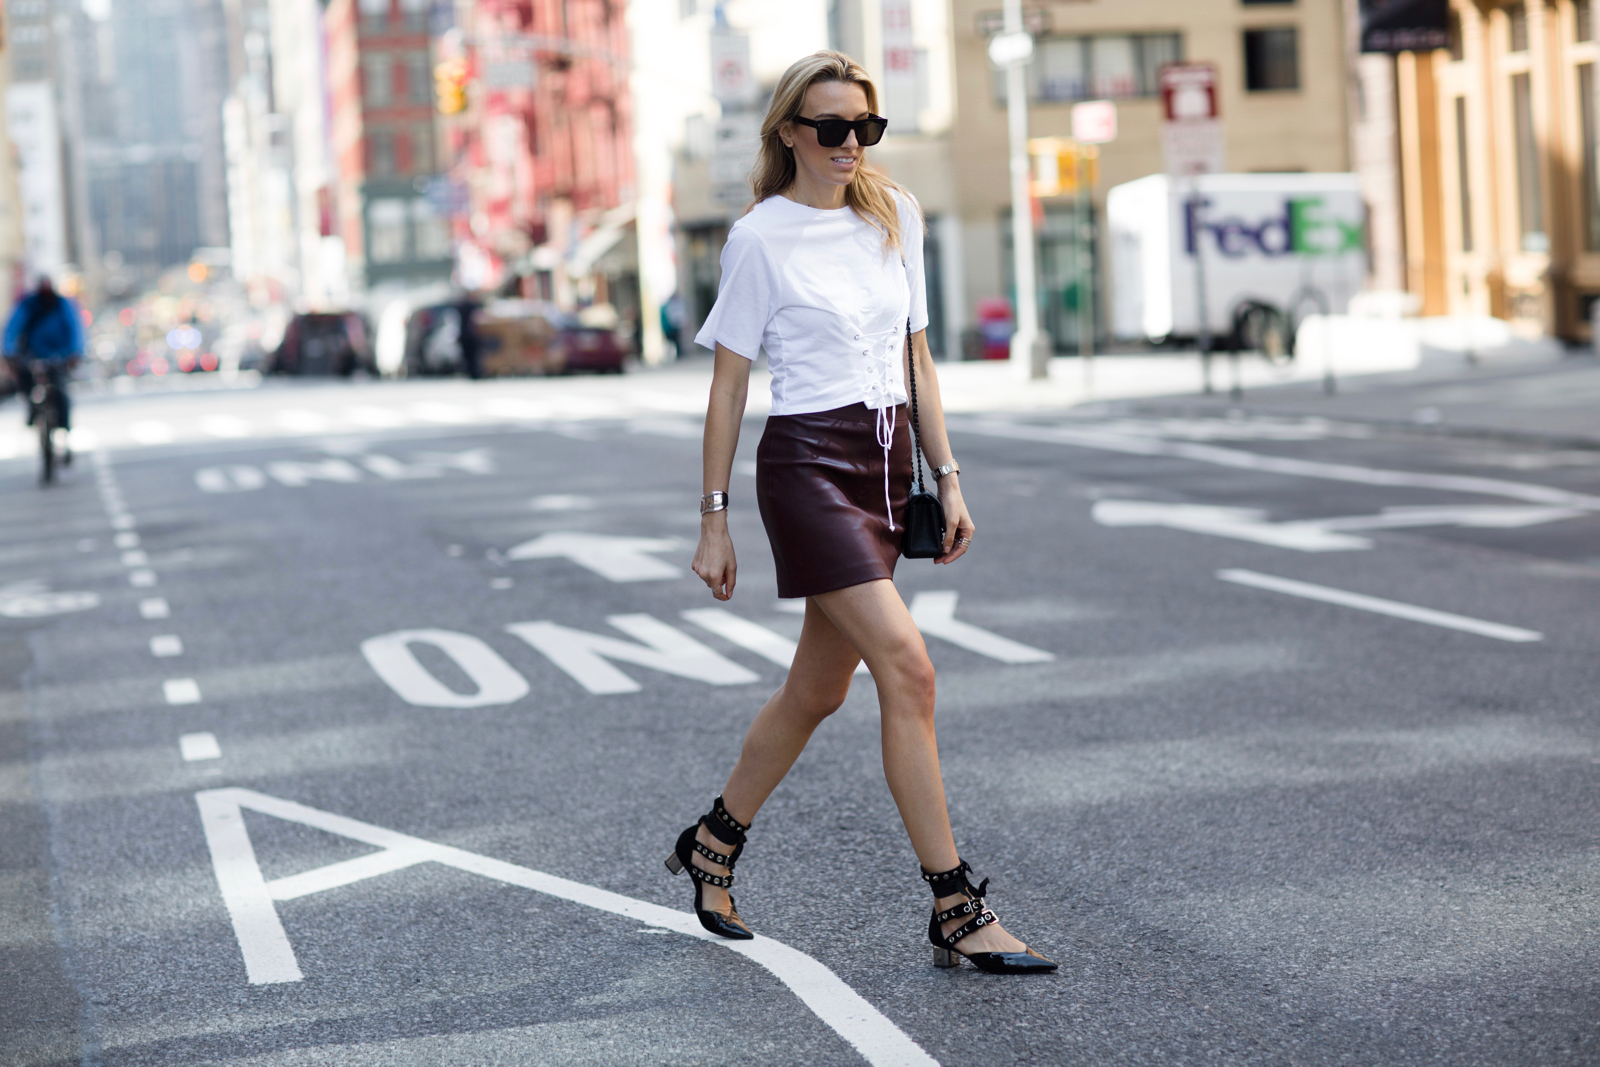 Self-Portrait x Robert Clergerie pumps, Corset tee, leather skirt, givenchy sunglasses, Chanel